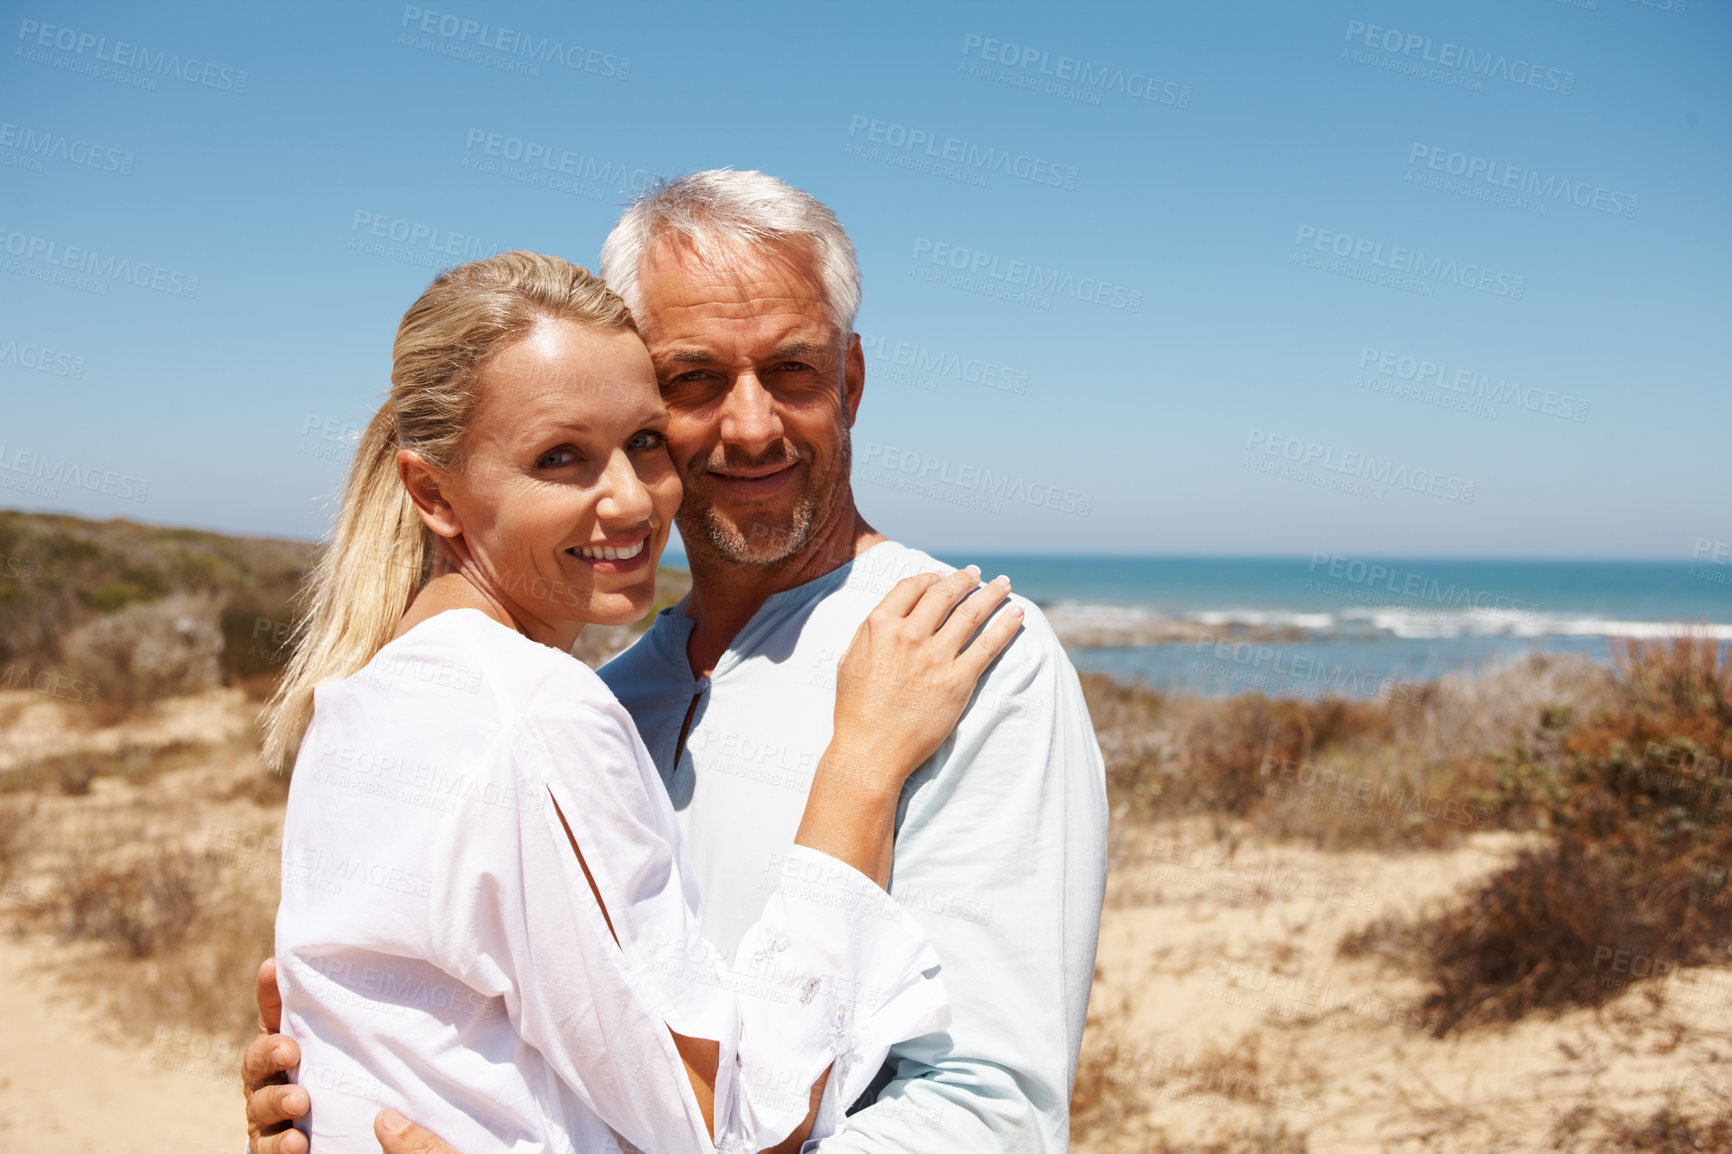 south africa senior dating A completely free south african dating site, there are absolutely no charges for anything register now to send messages and join the dating discussion forum.